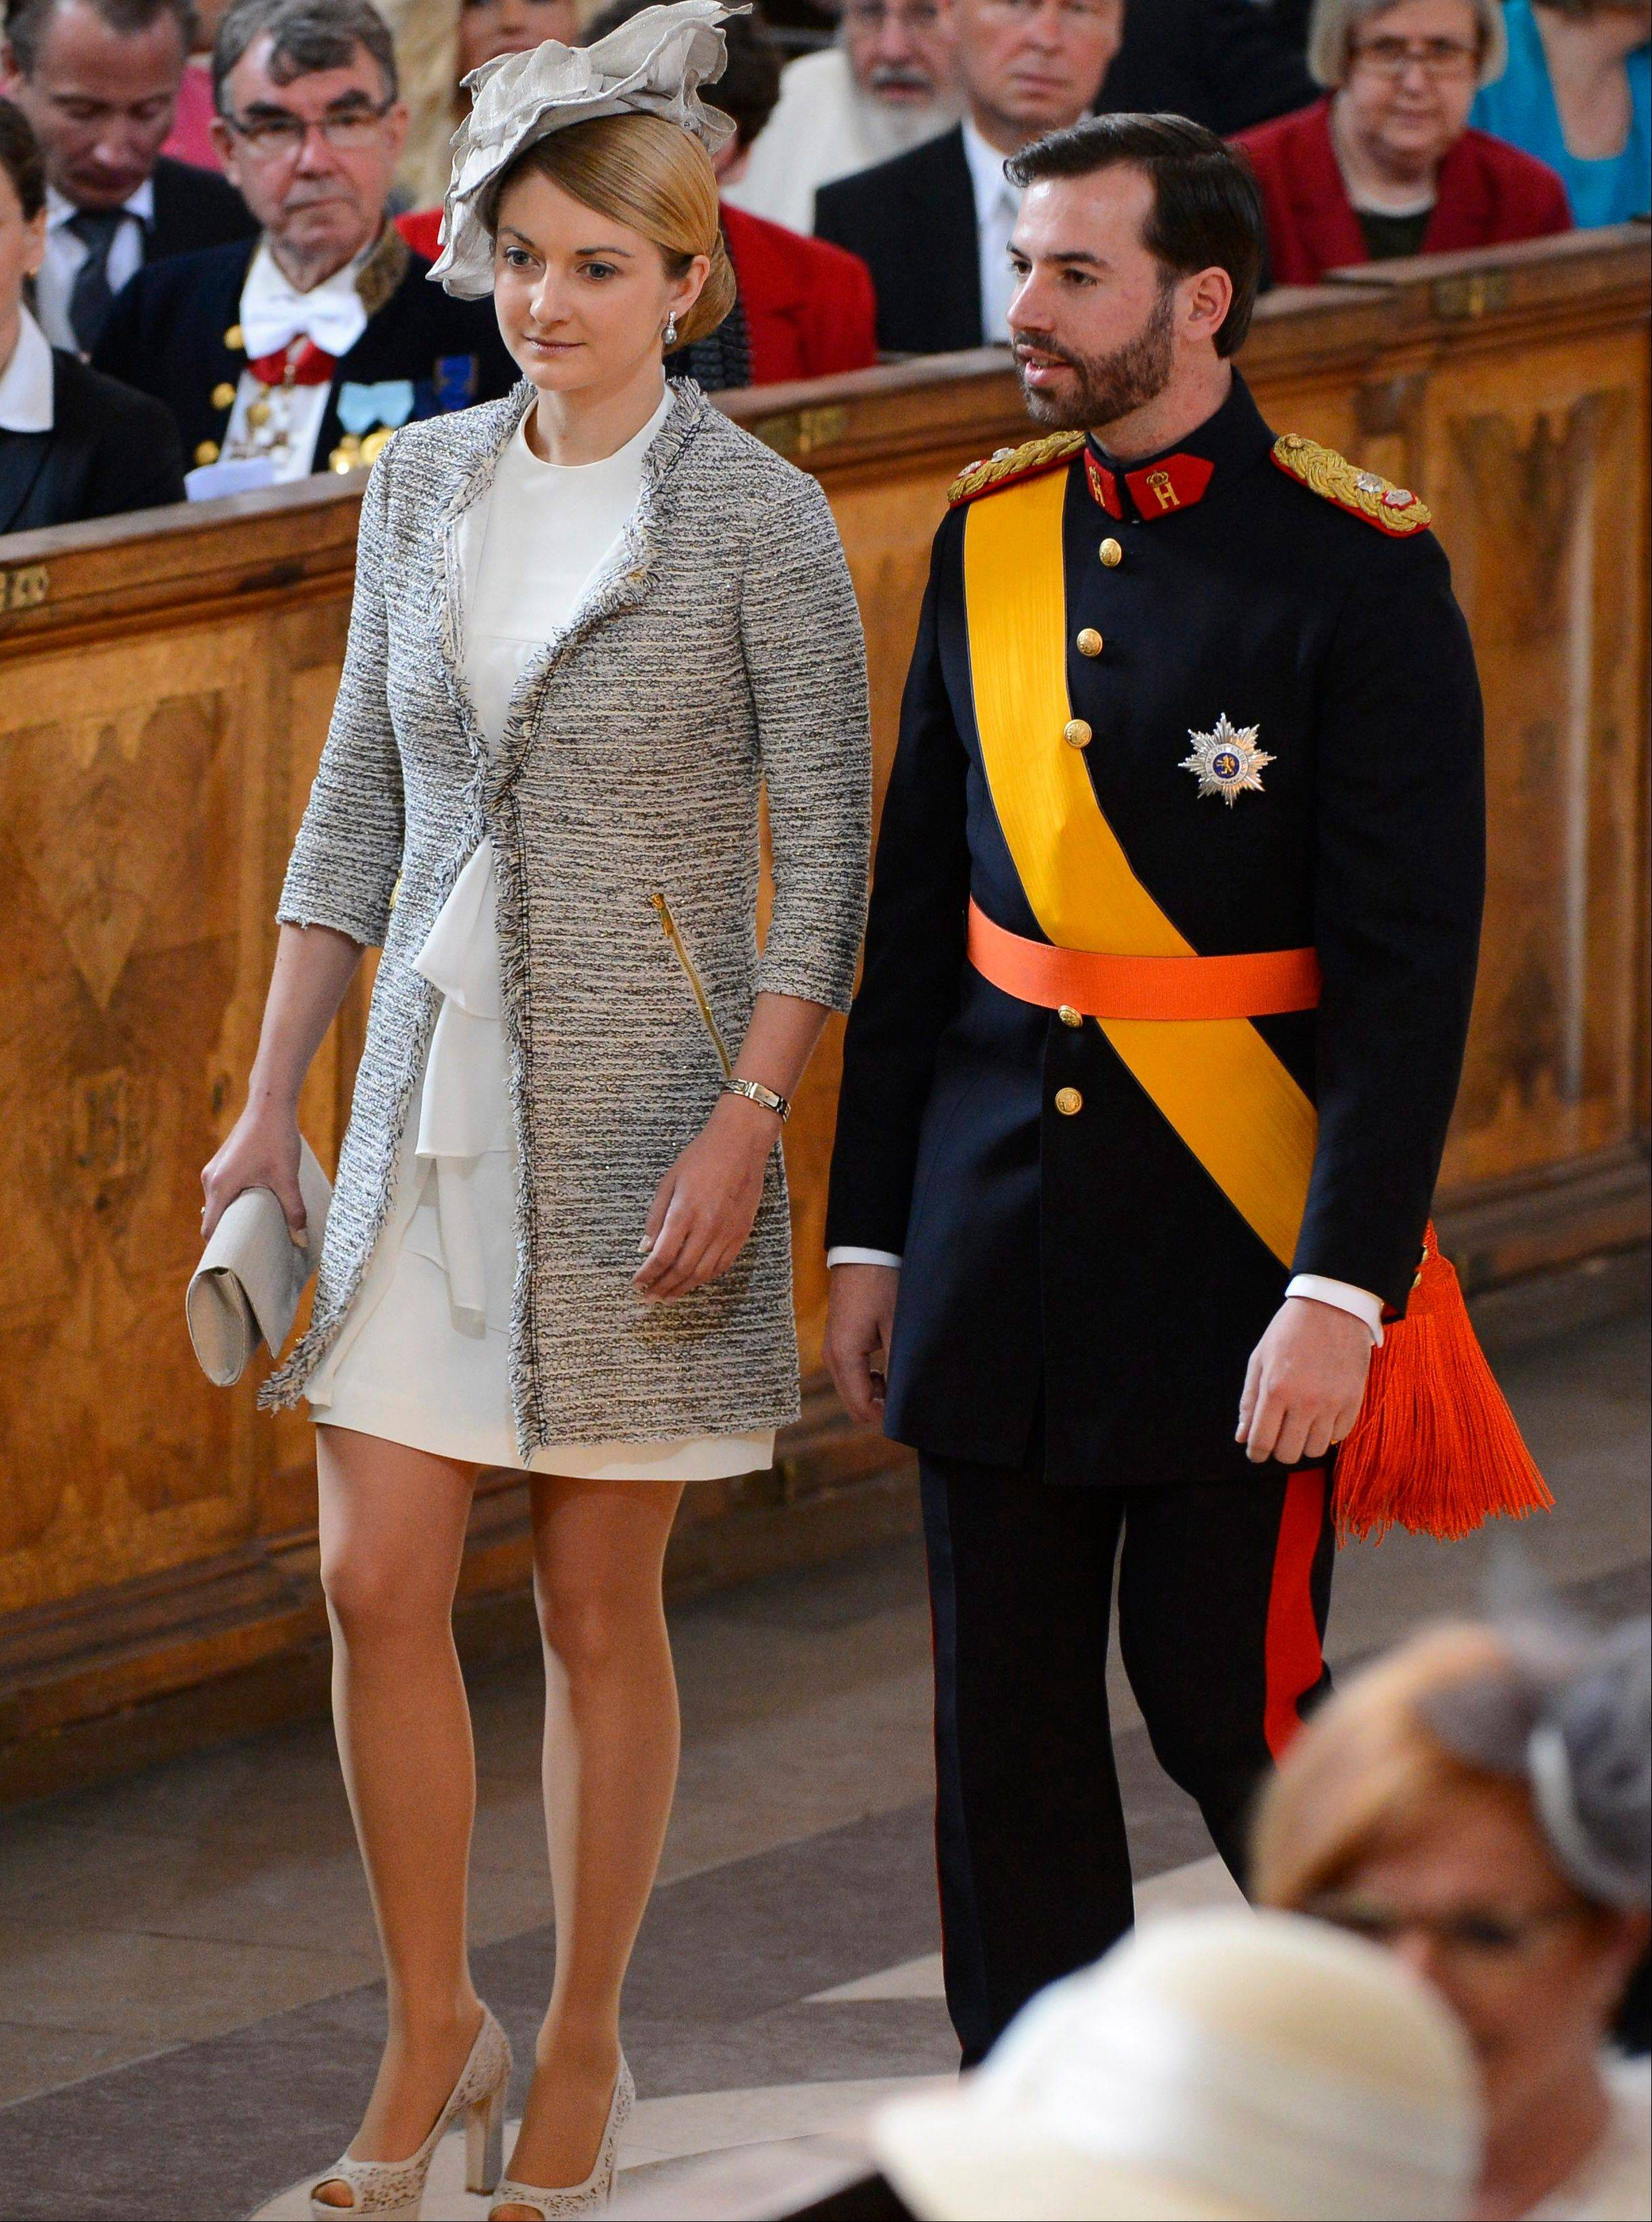 Prince Guillaume of Luxembourg, the heir to the throne, will marry Belgian Countess Stephanie de Lannoy during a two-day affair,